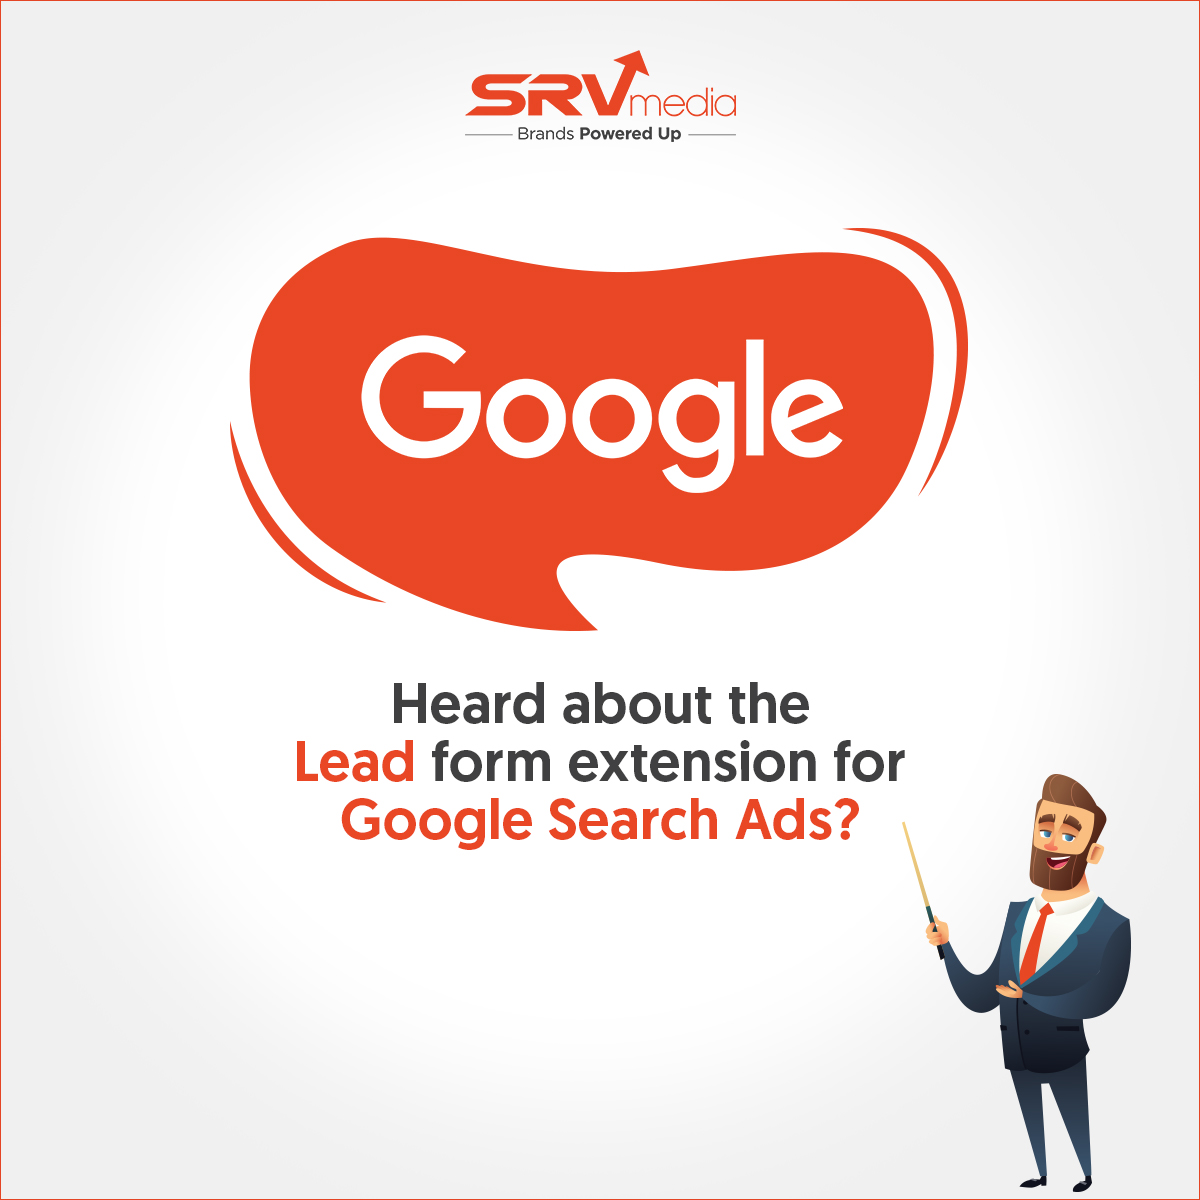 This is just one of the many updates of Google Ads over the years. Want an exhaustive list? Visit: https://www.srvmedia.com/blog/story-behind-sem-an-evolution-guide/… #digitalmarketing #google #googleupdates pic.twitter.com/4dthi9BQHR